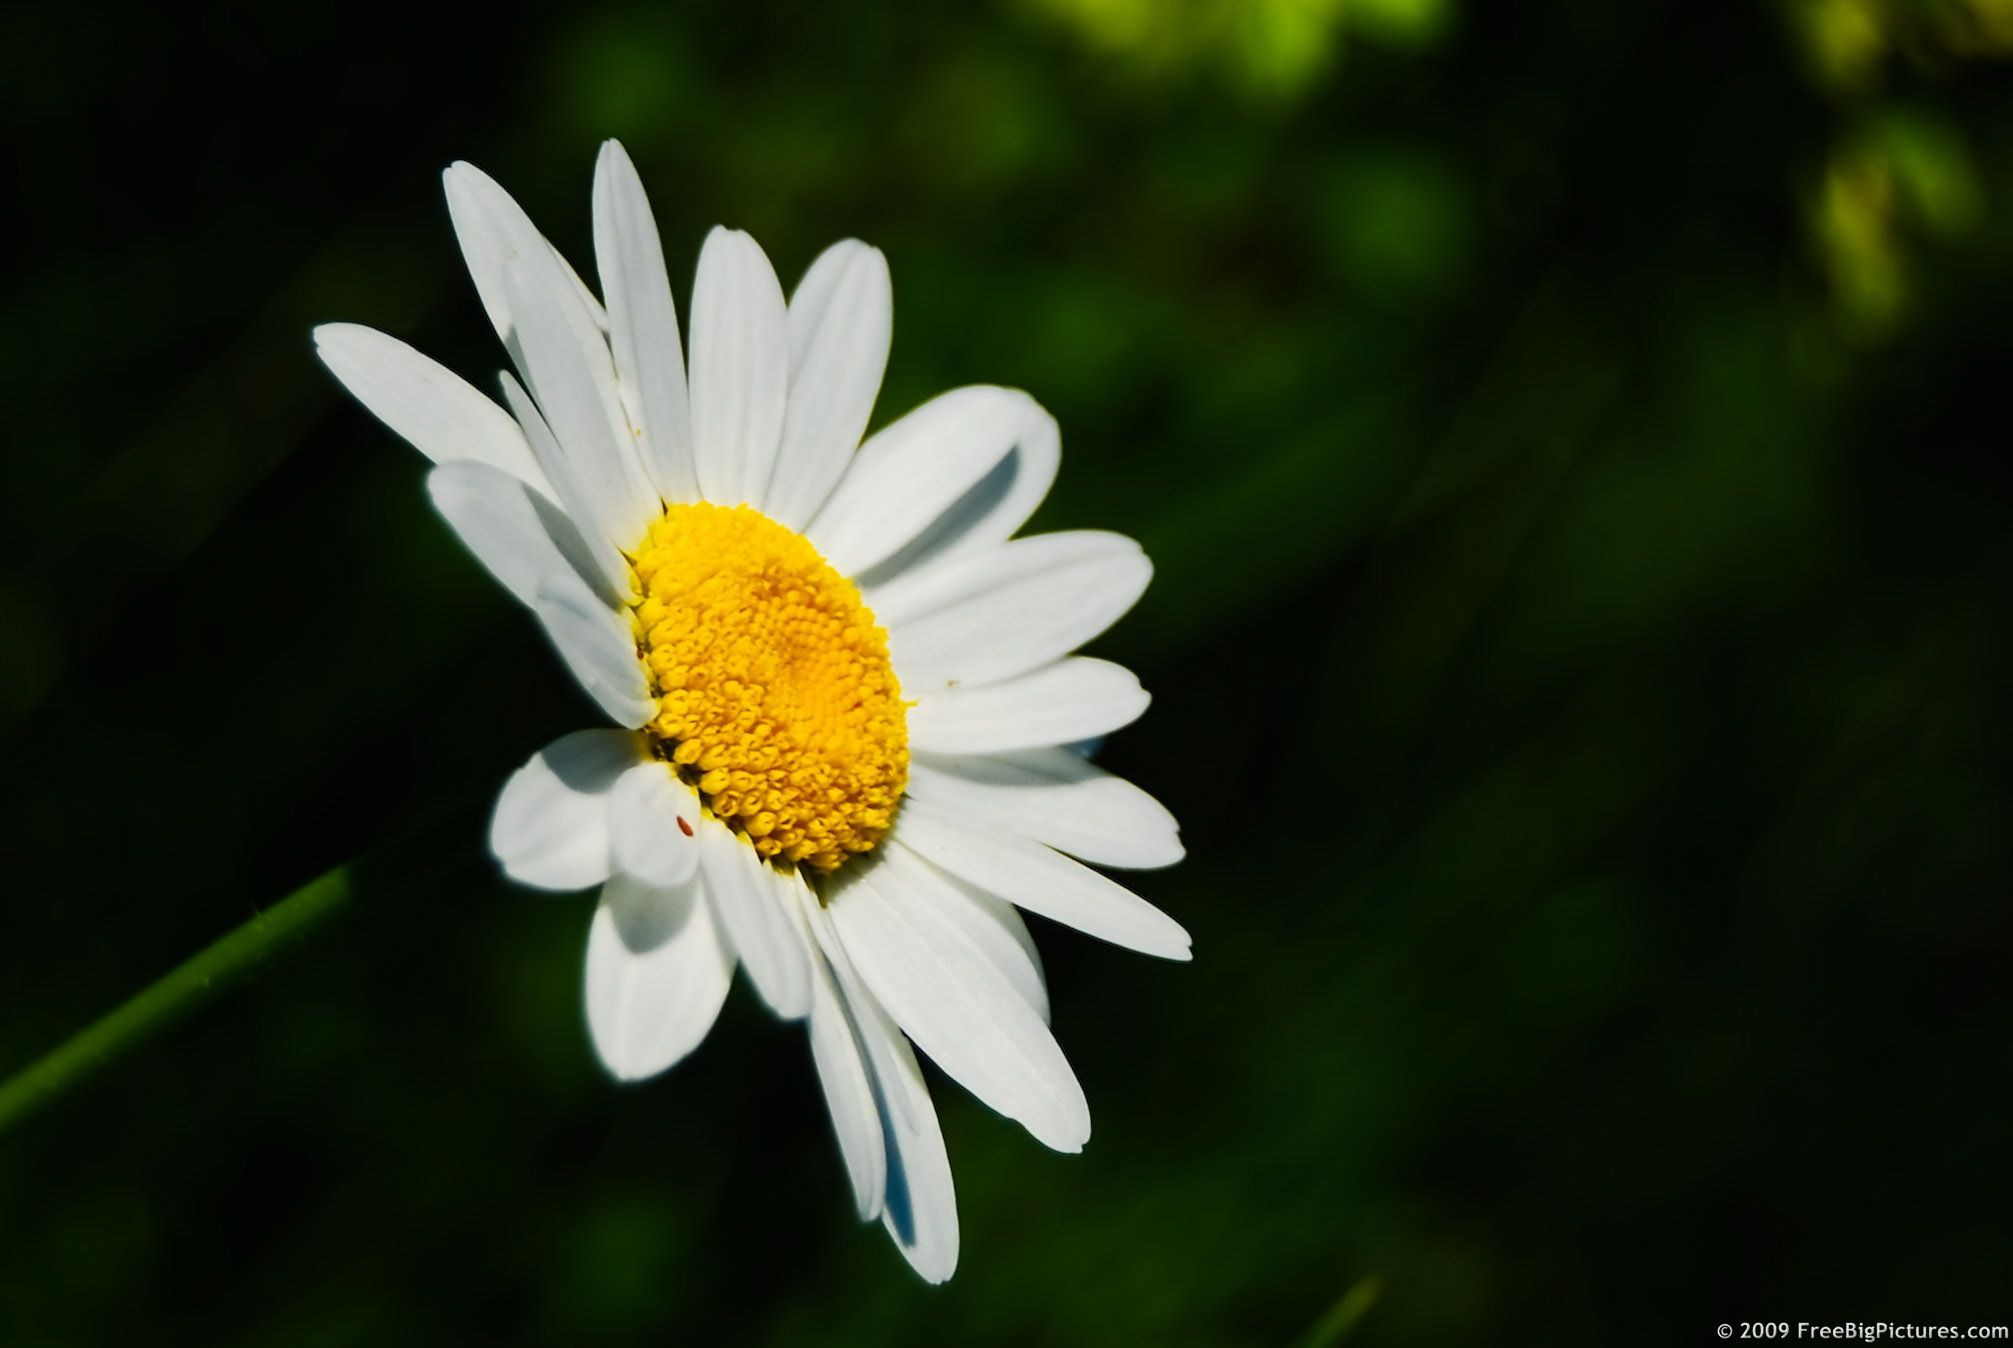 If you want to help each plant to have an even more beautiful daisy if you want to help each plant to have an even more beautiful daisy flower izmirmasajfo